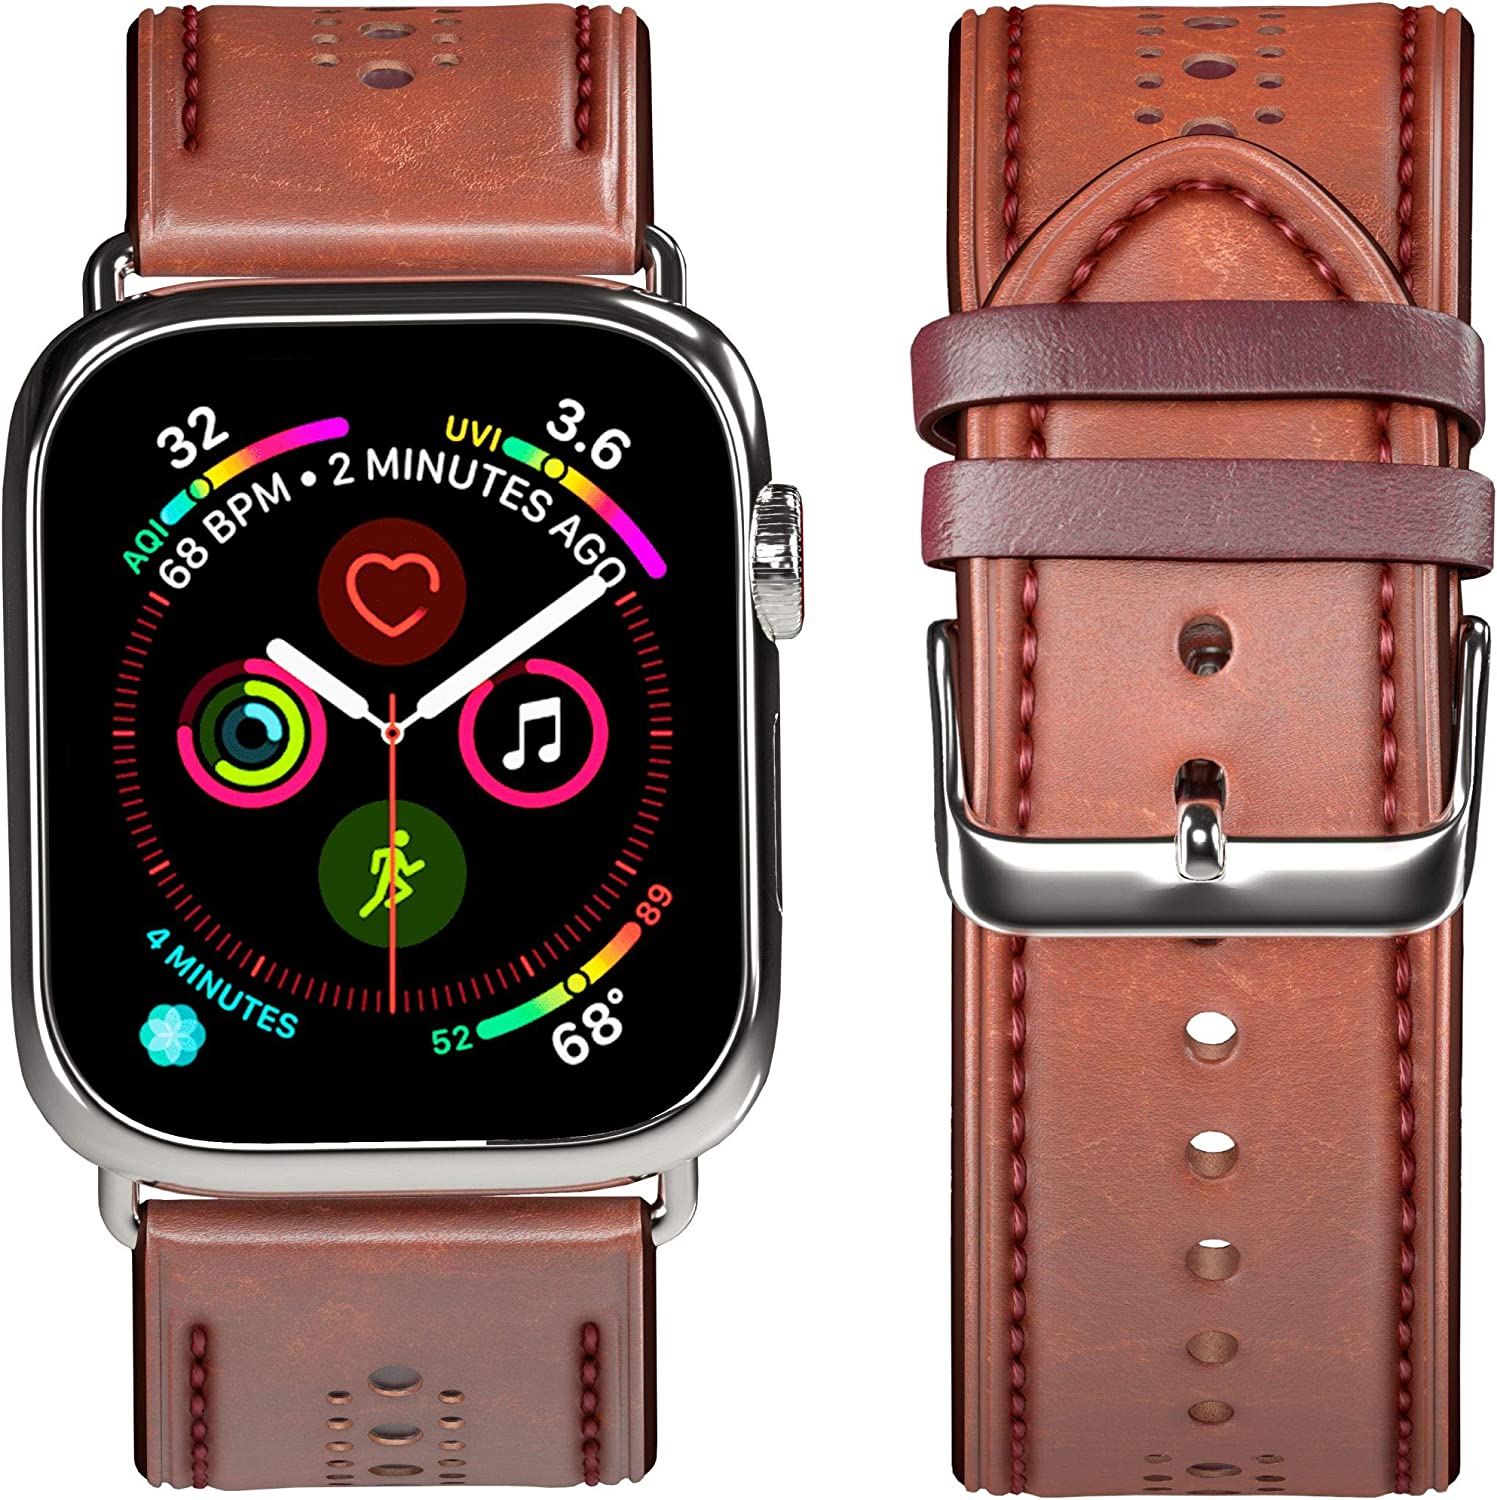 OGGO for Apple Watch Band 42mm 44mm - Premium Genuine Leather Classic Buckle Vintage Retro Strap Bands Wristband Replacement for Apple Watches iWatch Series 5 4 3 2 1 Sport Edition – Brown